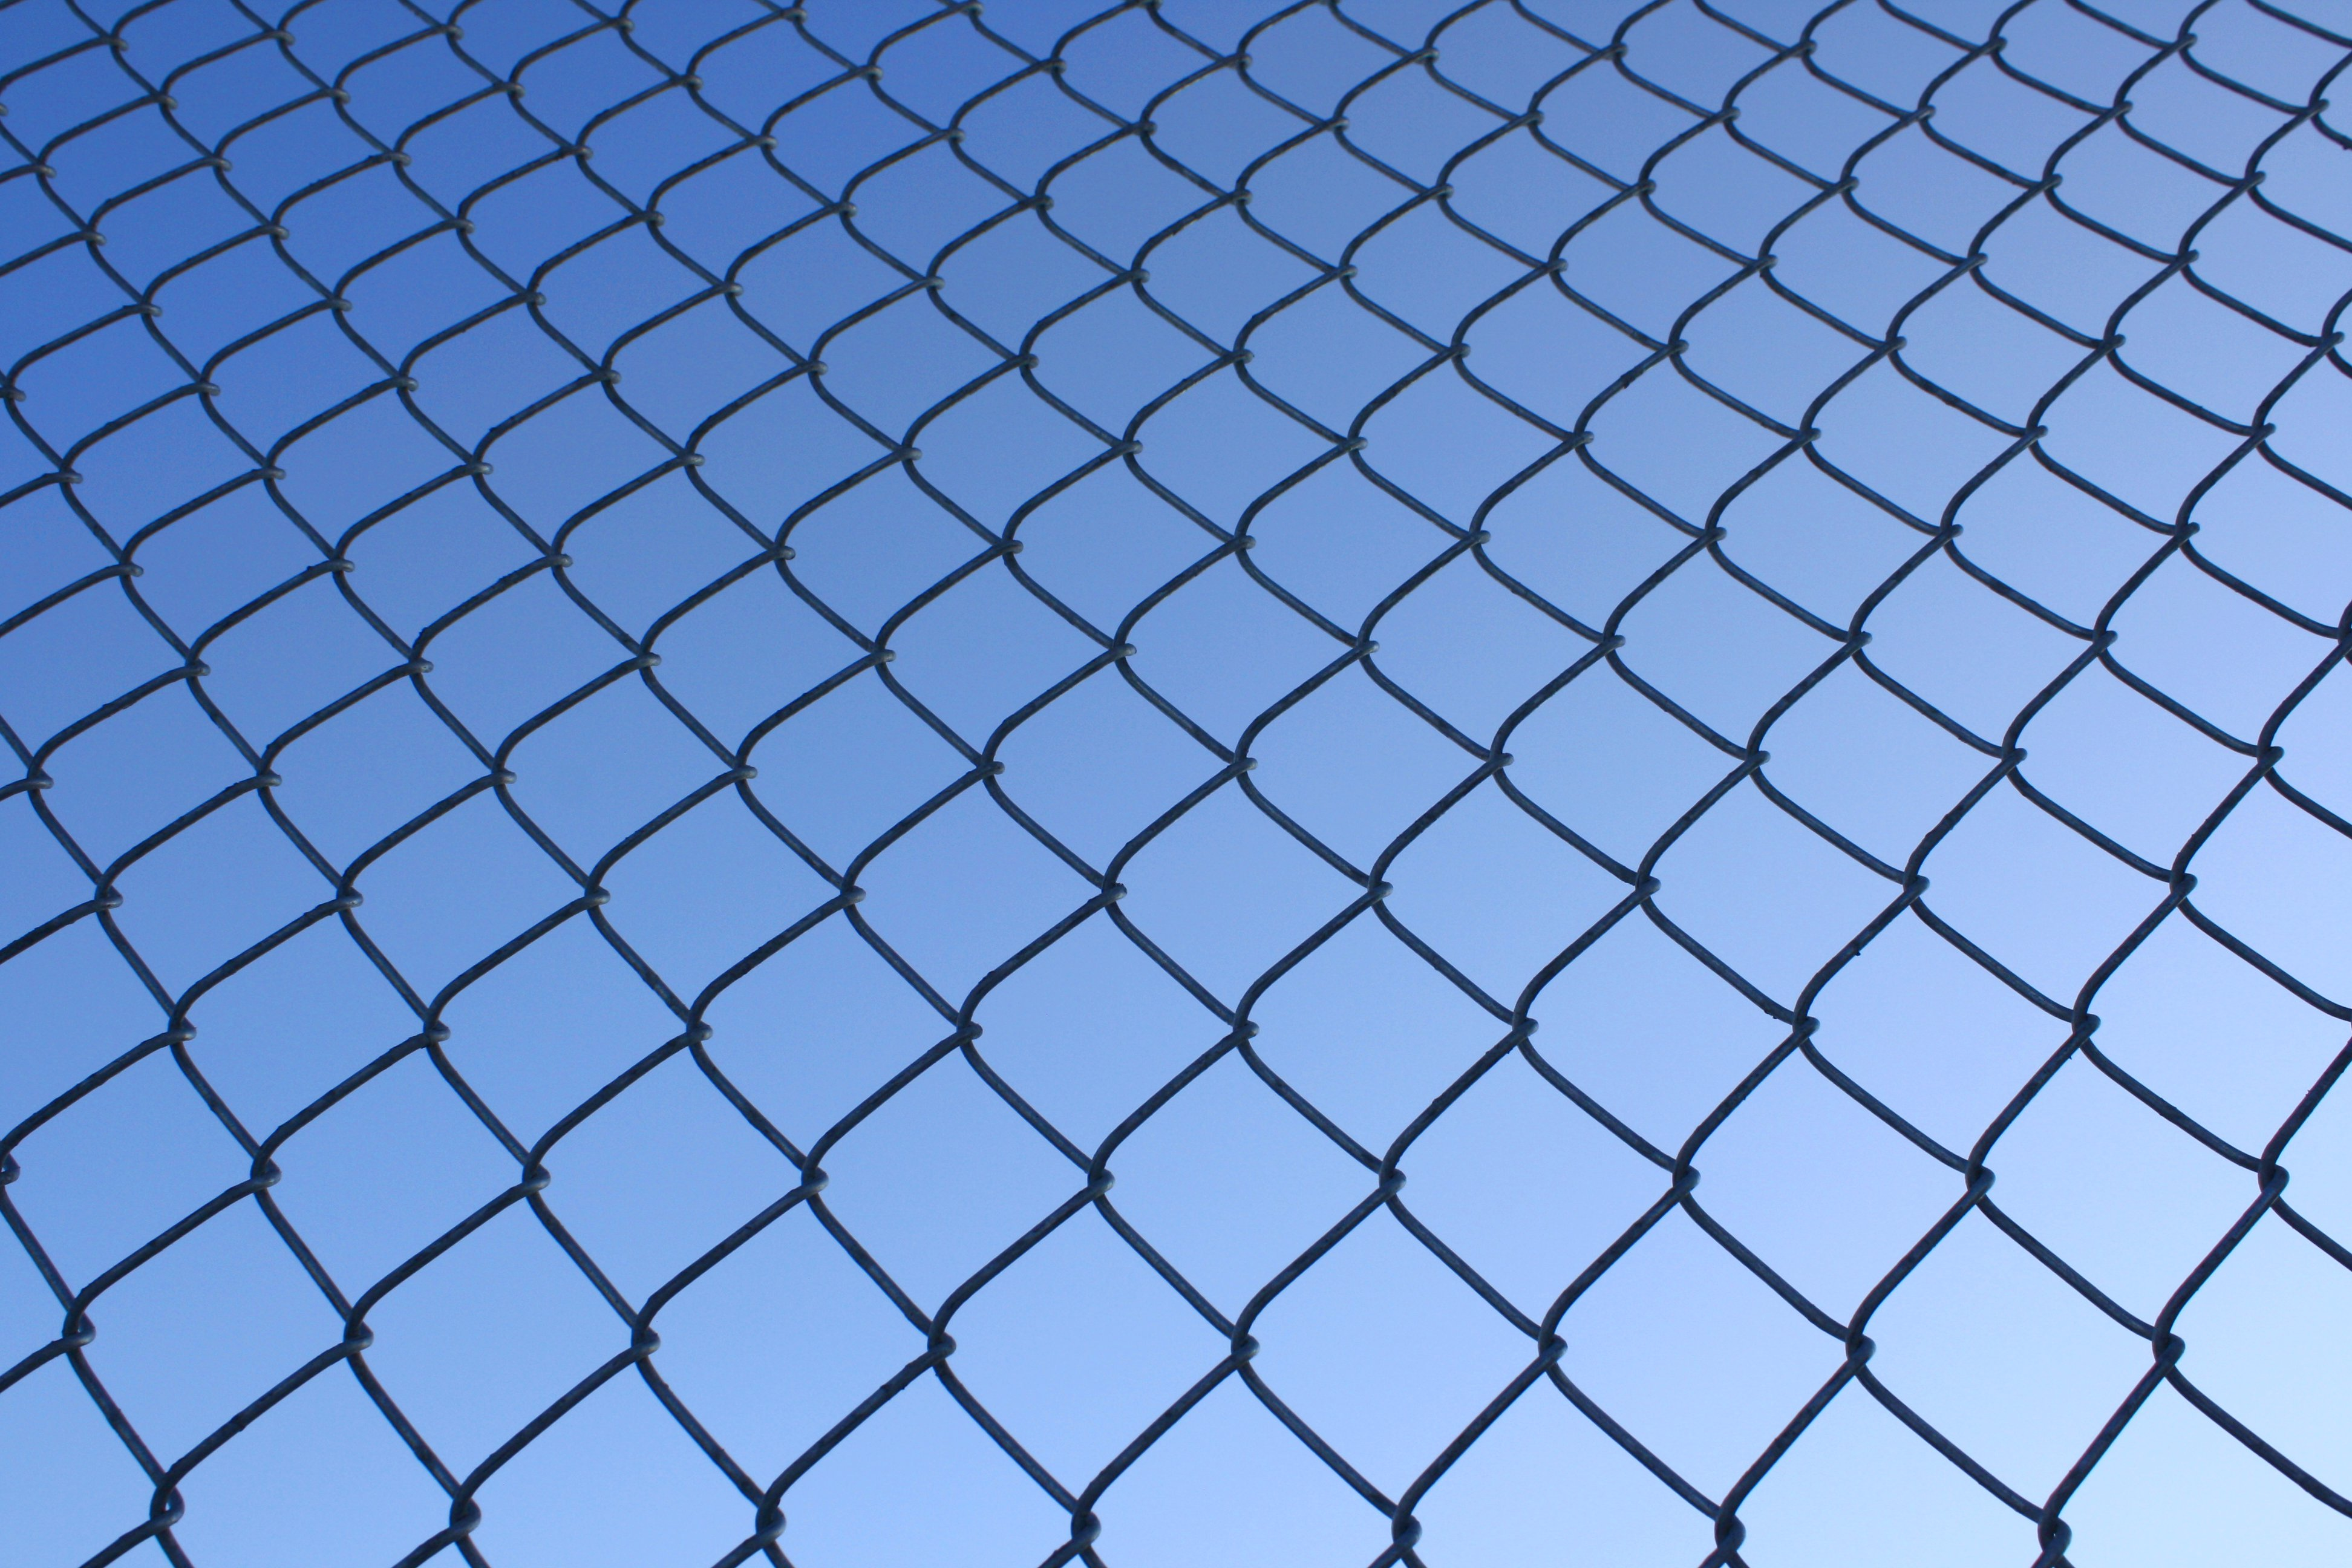 Chain Link Fence Wallpaper: Chain Link Fence Texture Picture